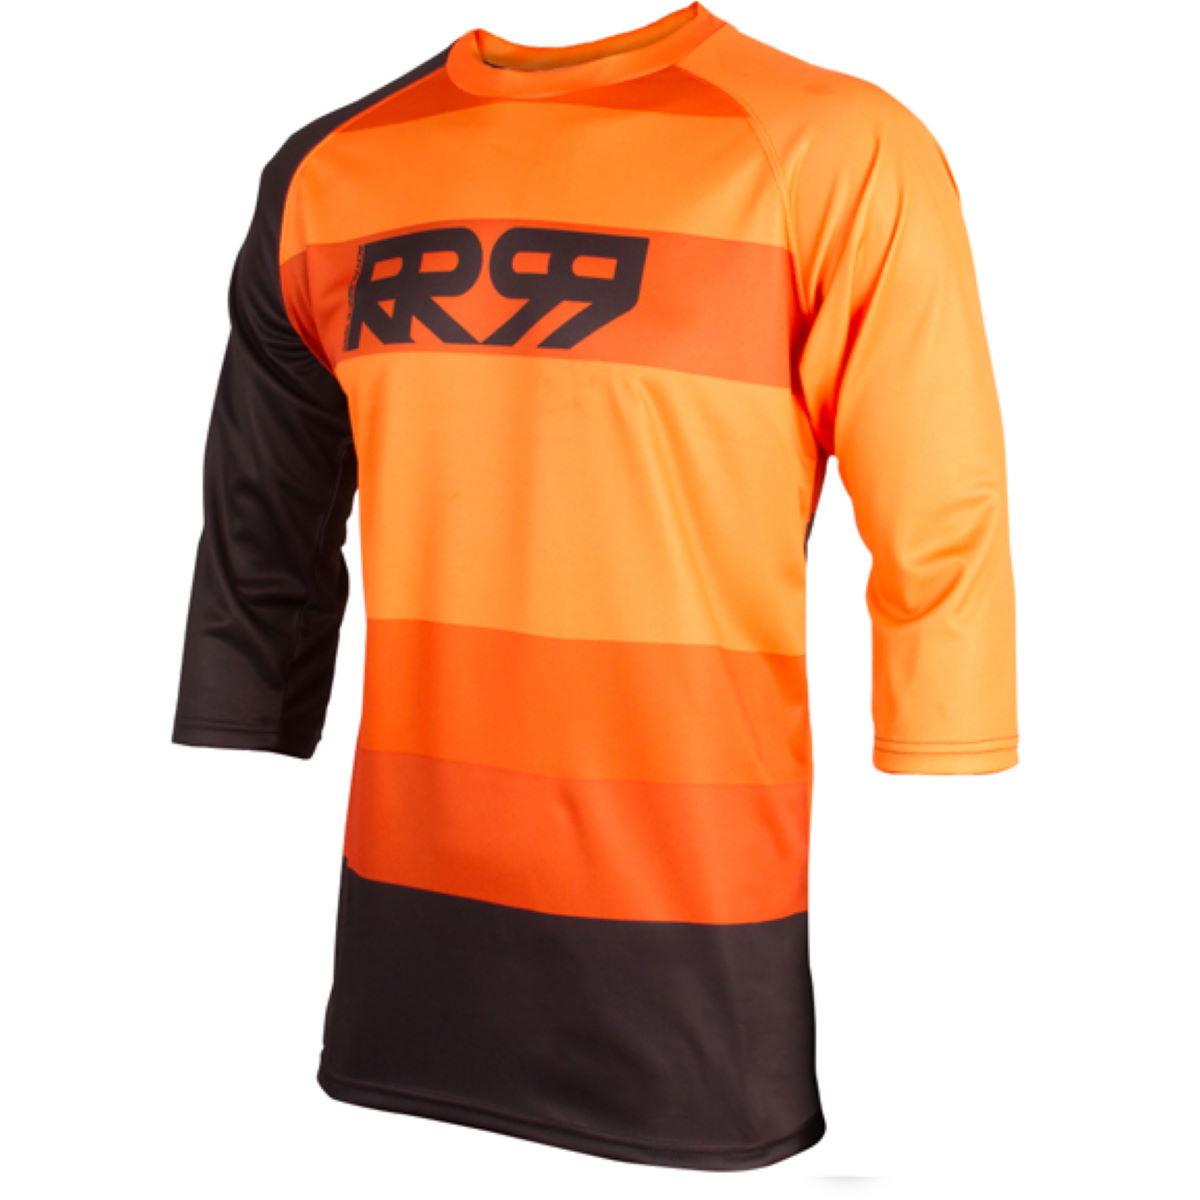 Royal Drift 3/4 Length Jersey - Maillots